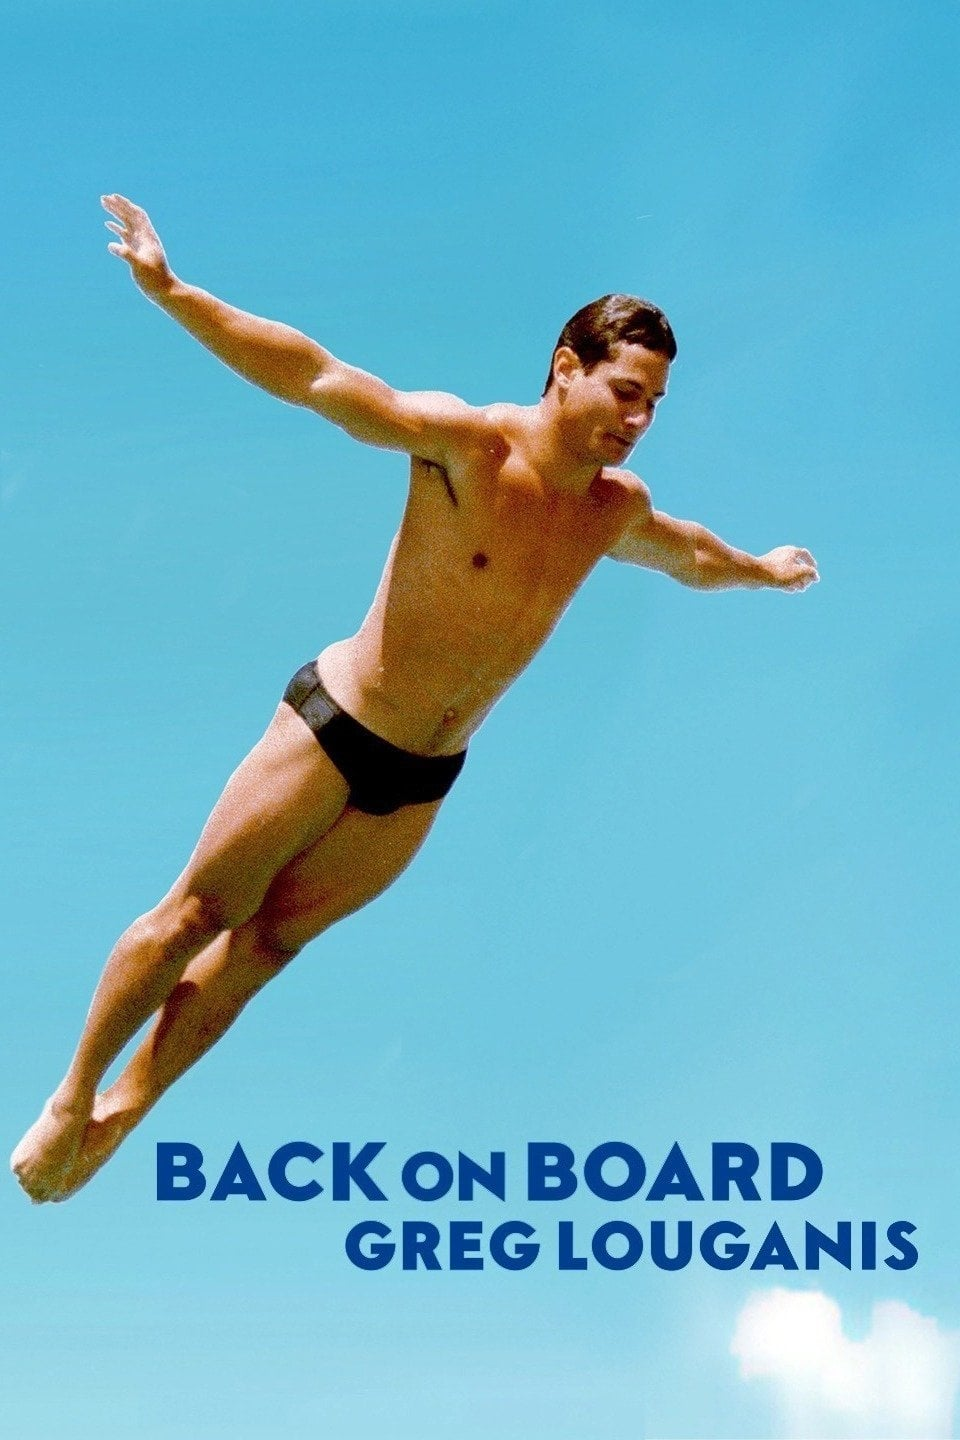 Caratula de BACK ON BOARD: GREG LOUGANIS (Back on Board: Greg Louganis)